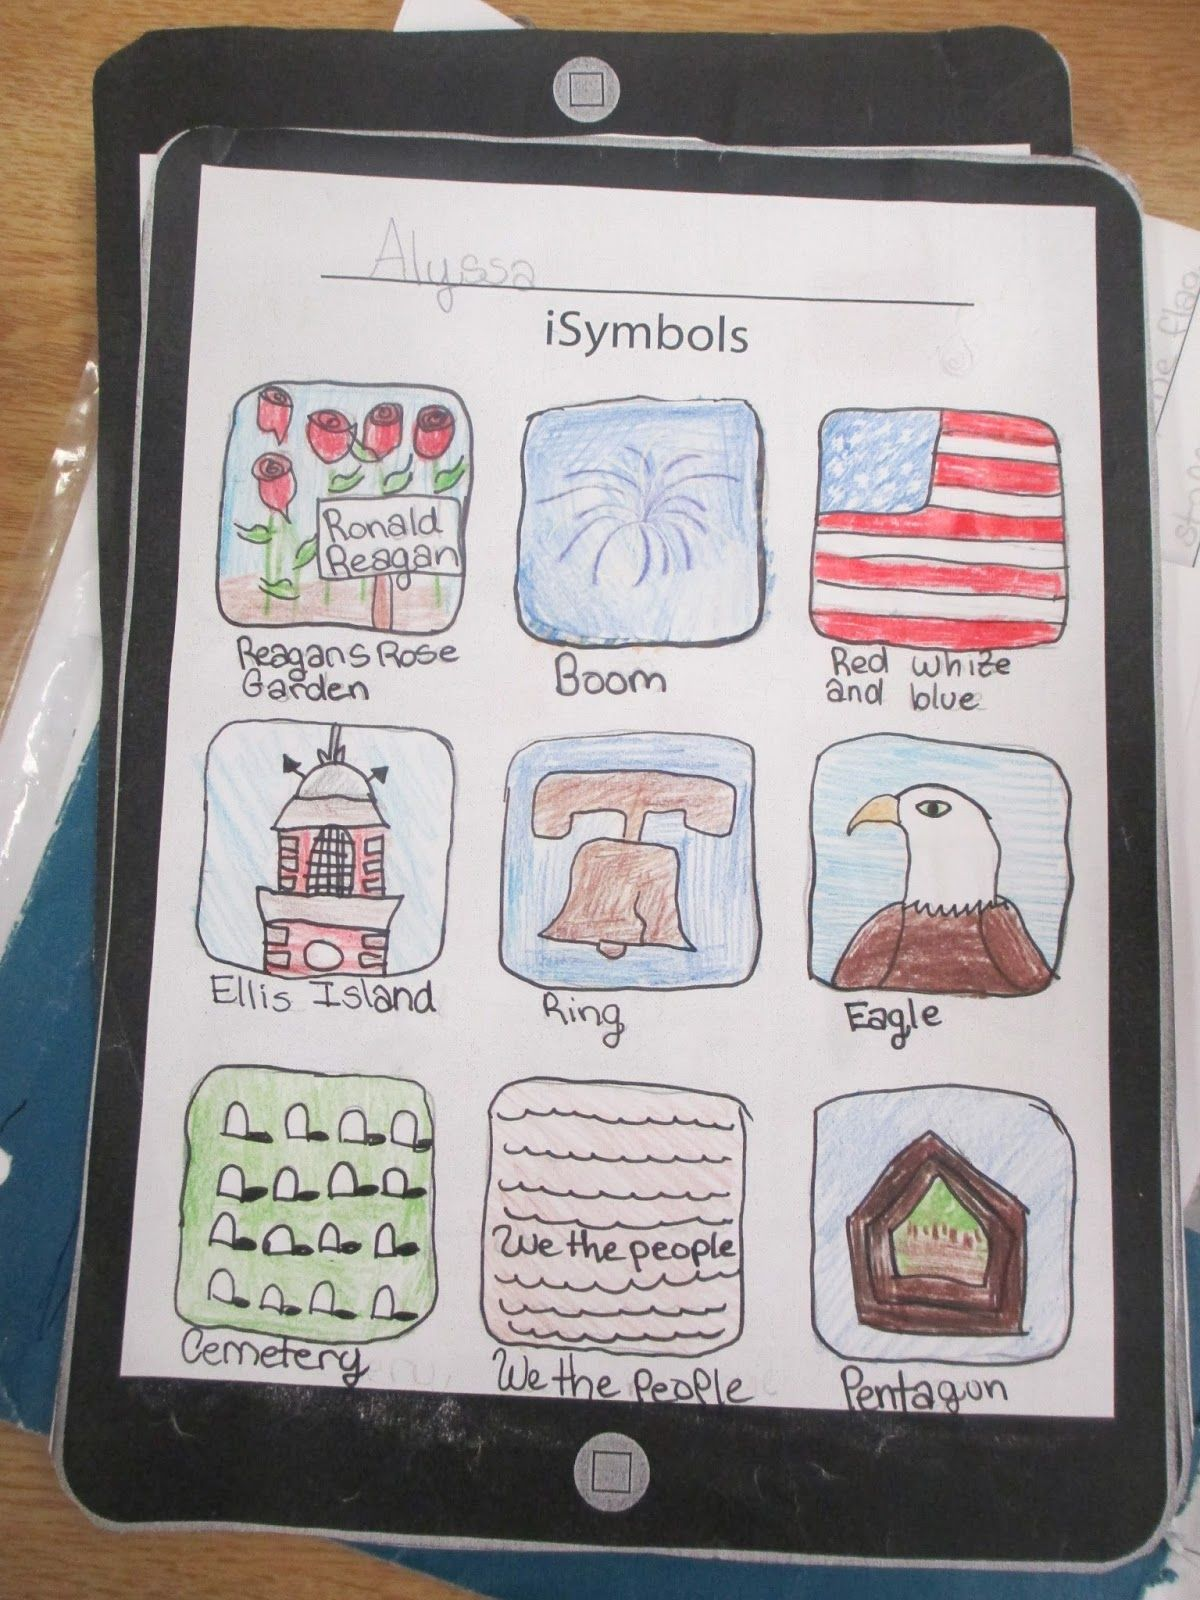 Symbols Project Includes Free Download For Printable Students